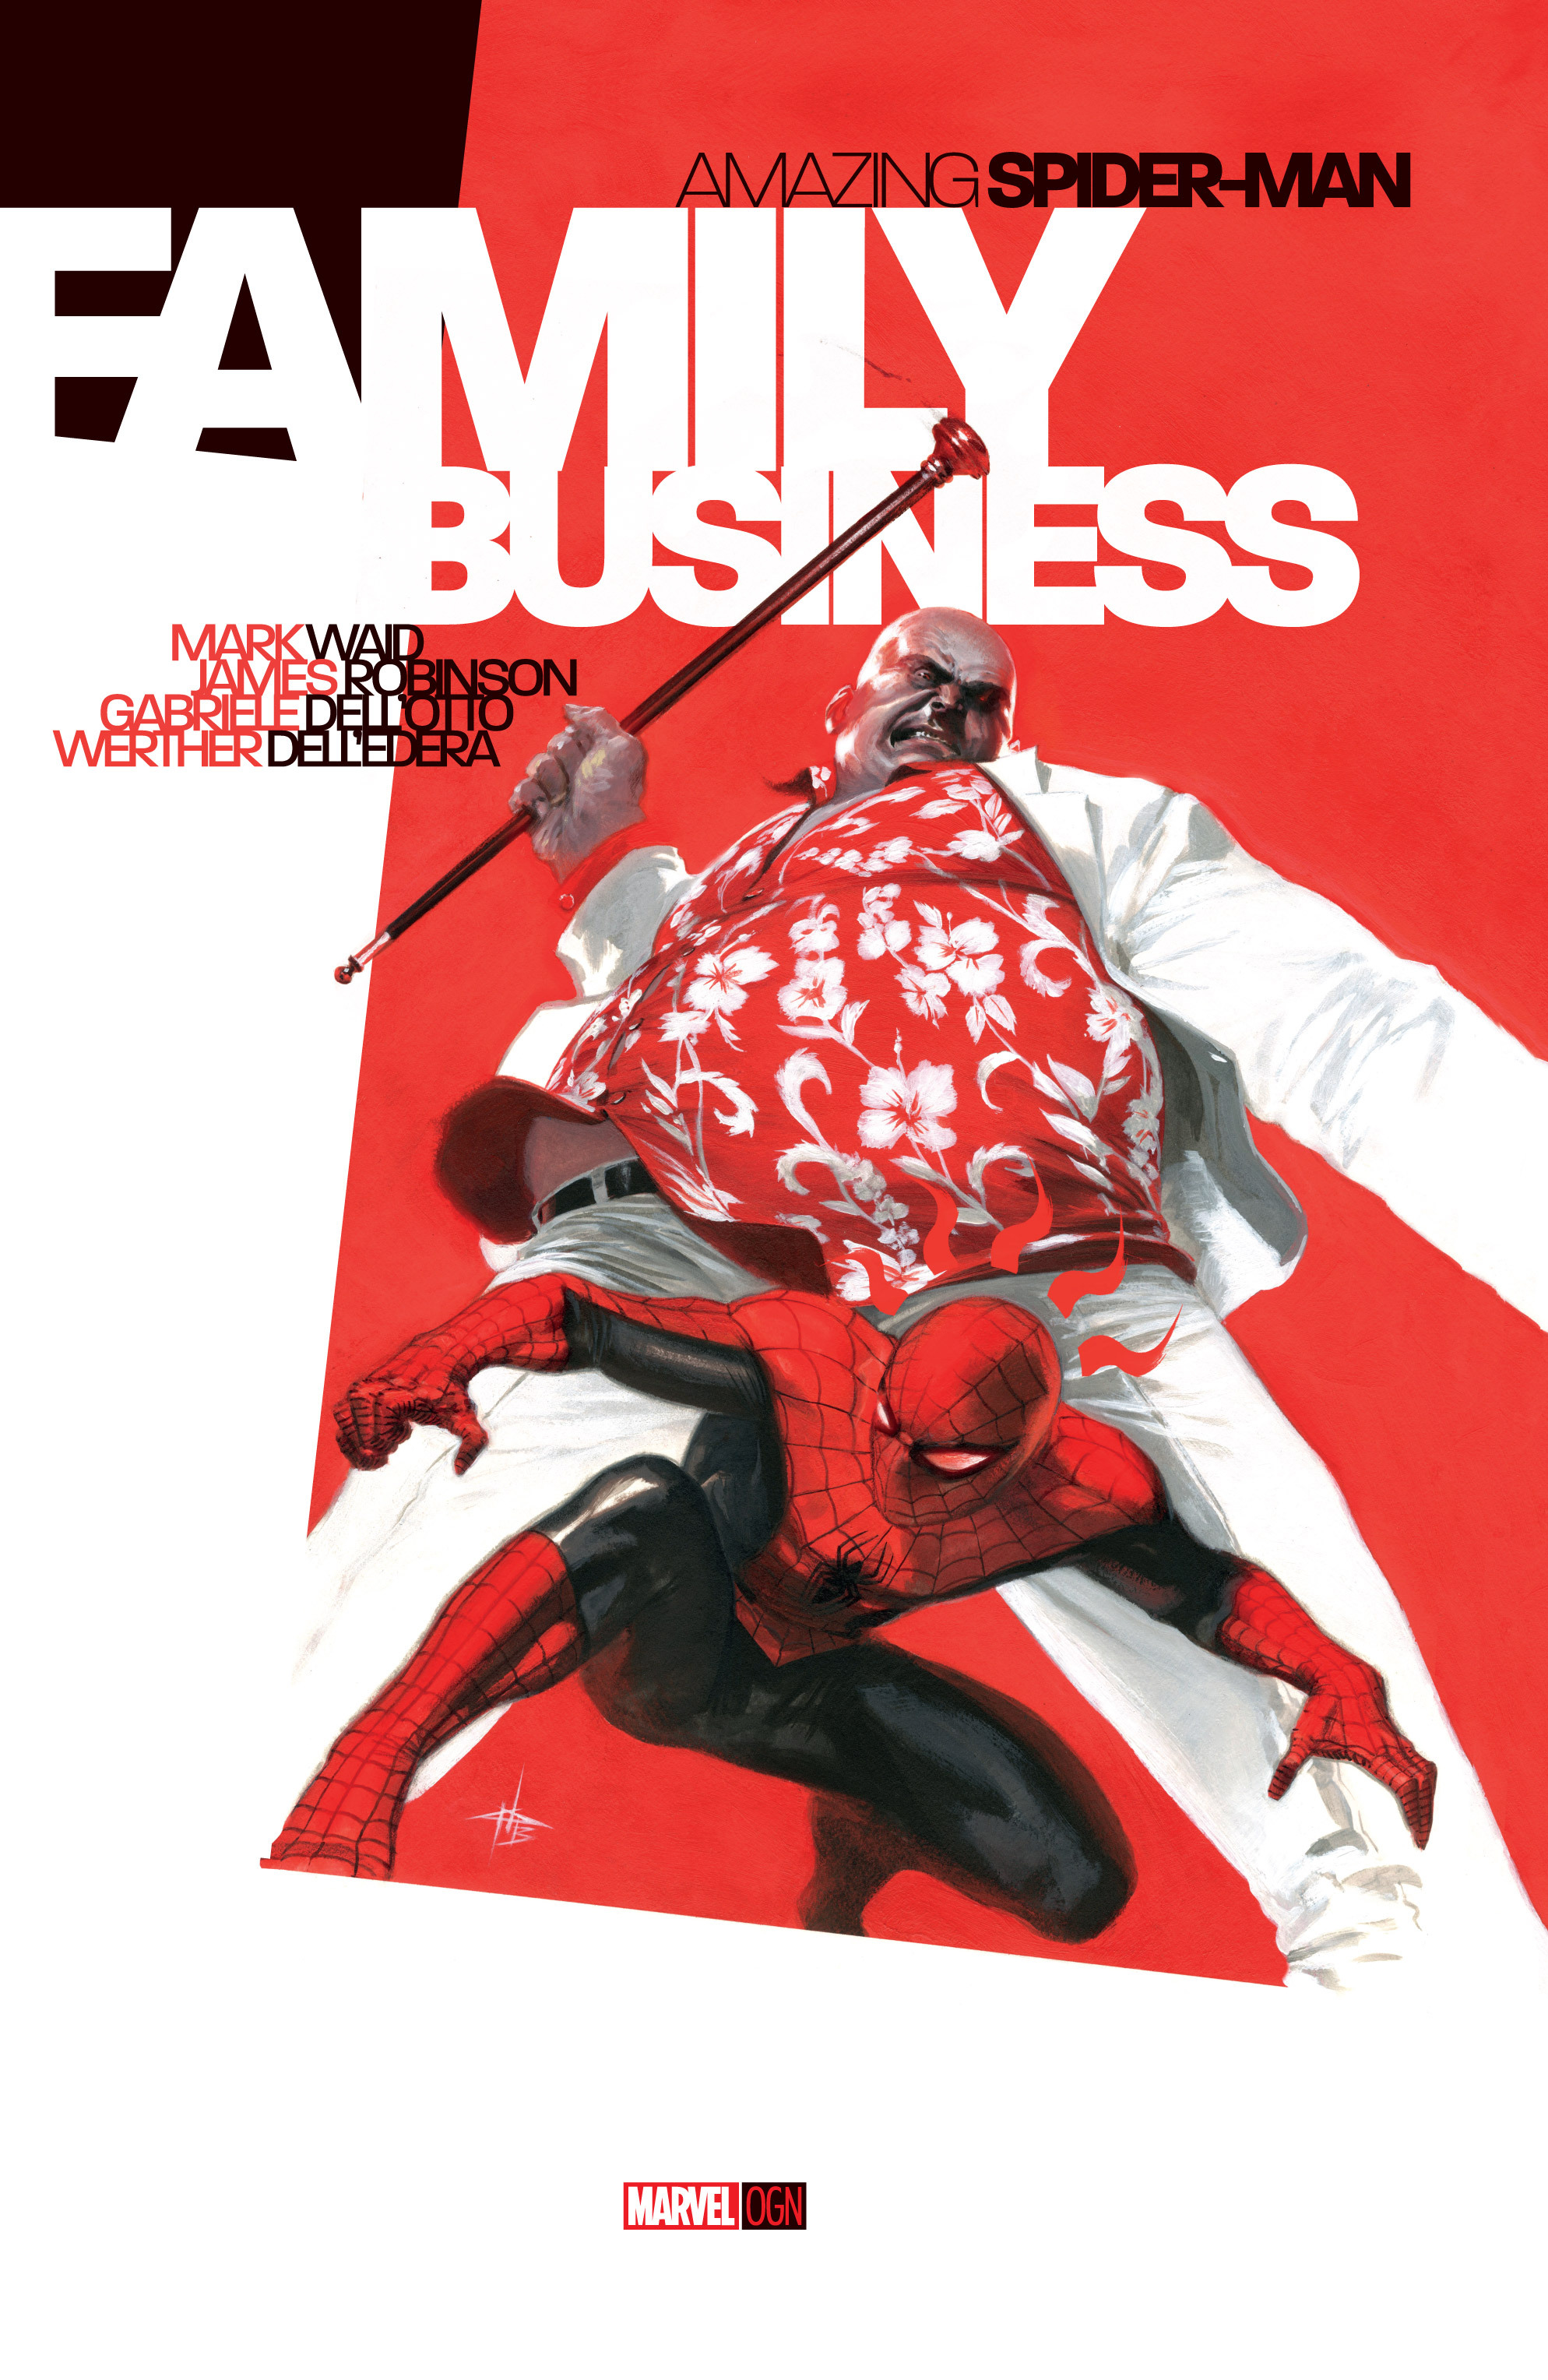 Amazing Spider-Man: Family Business Full Page 1